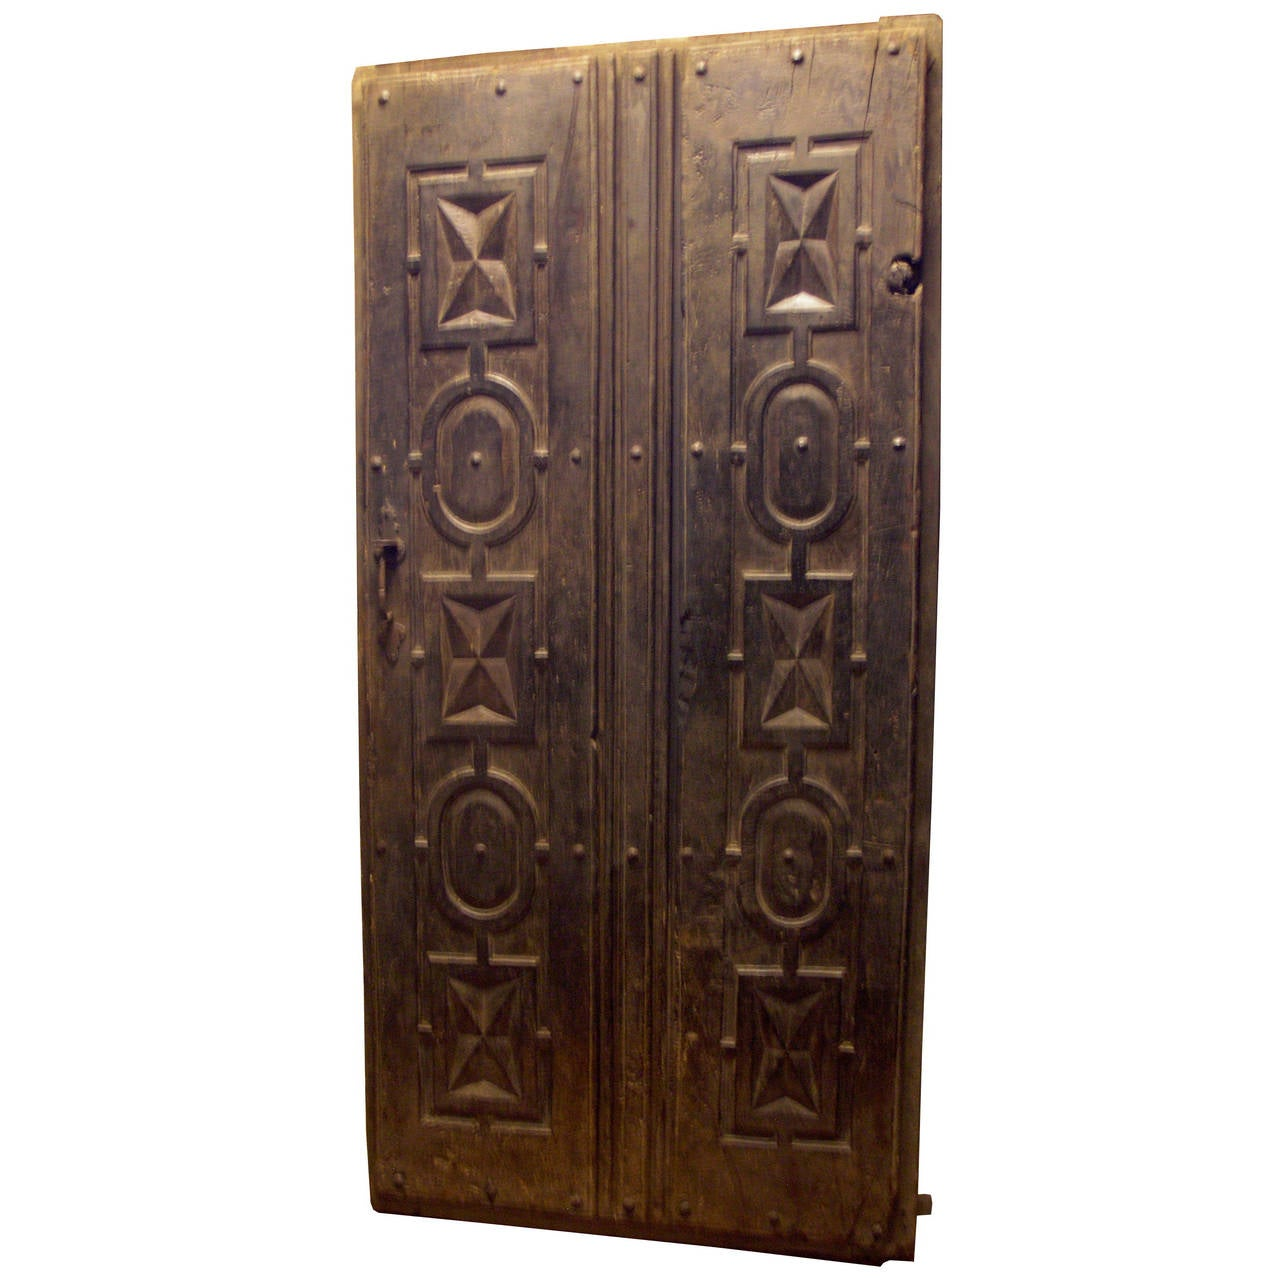 Antique carved double door for sale at 1stdibs for Double doors for sale